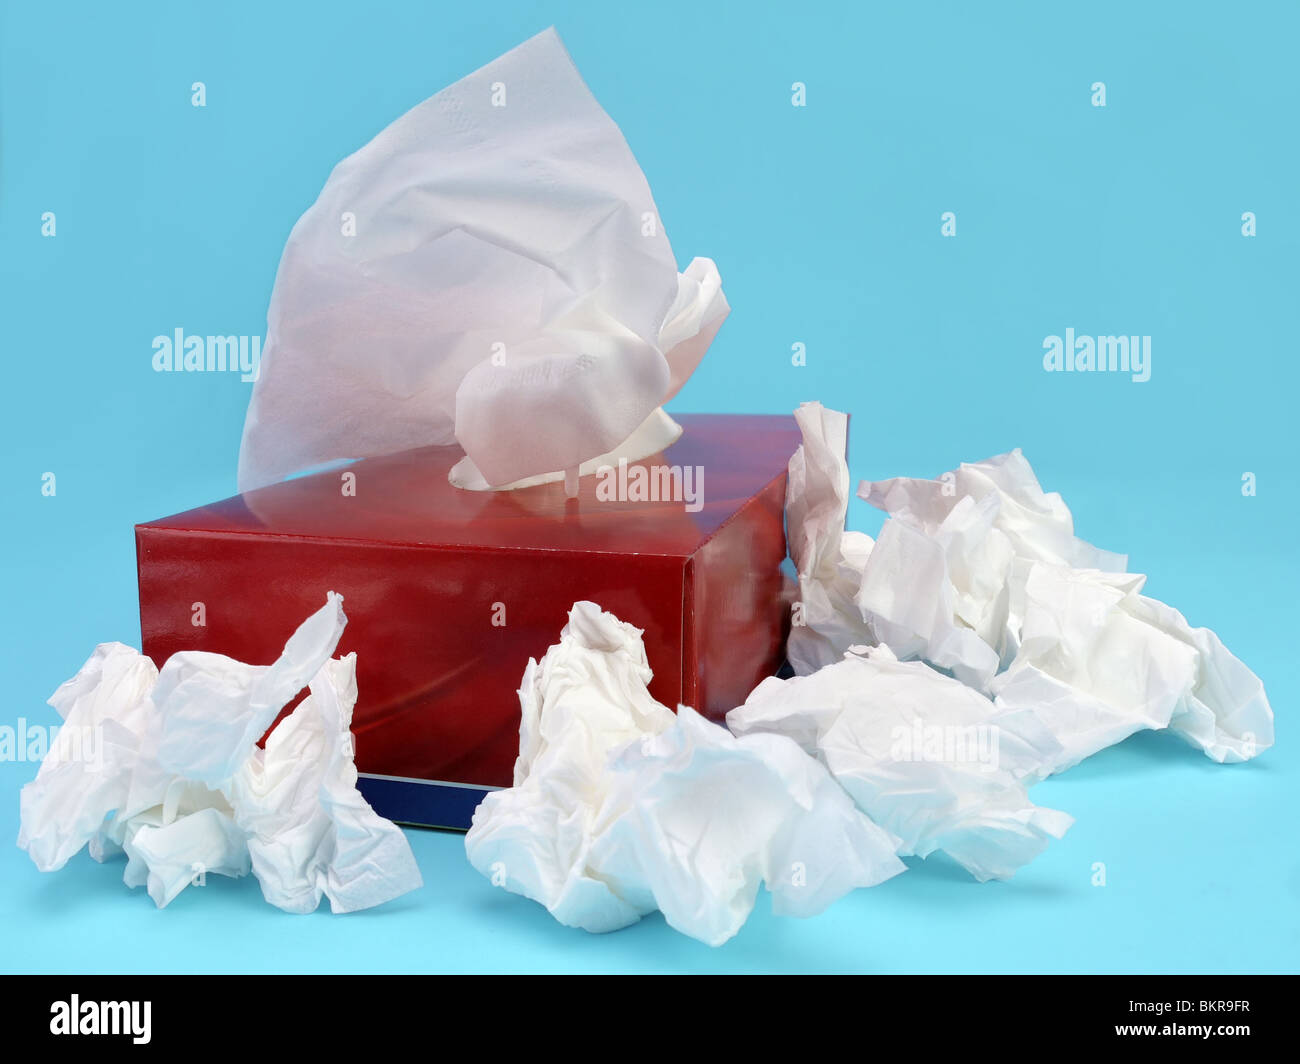 Paper tissue box with used tissues over light blue background - Stock Image